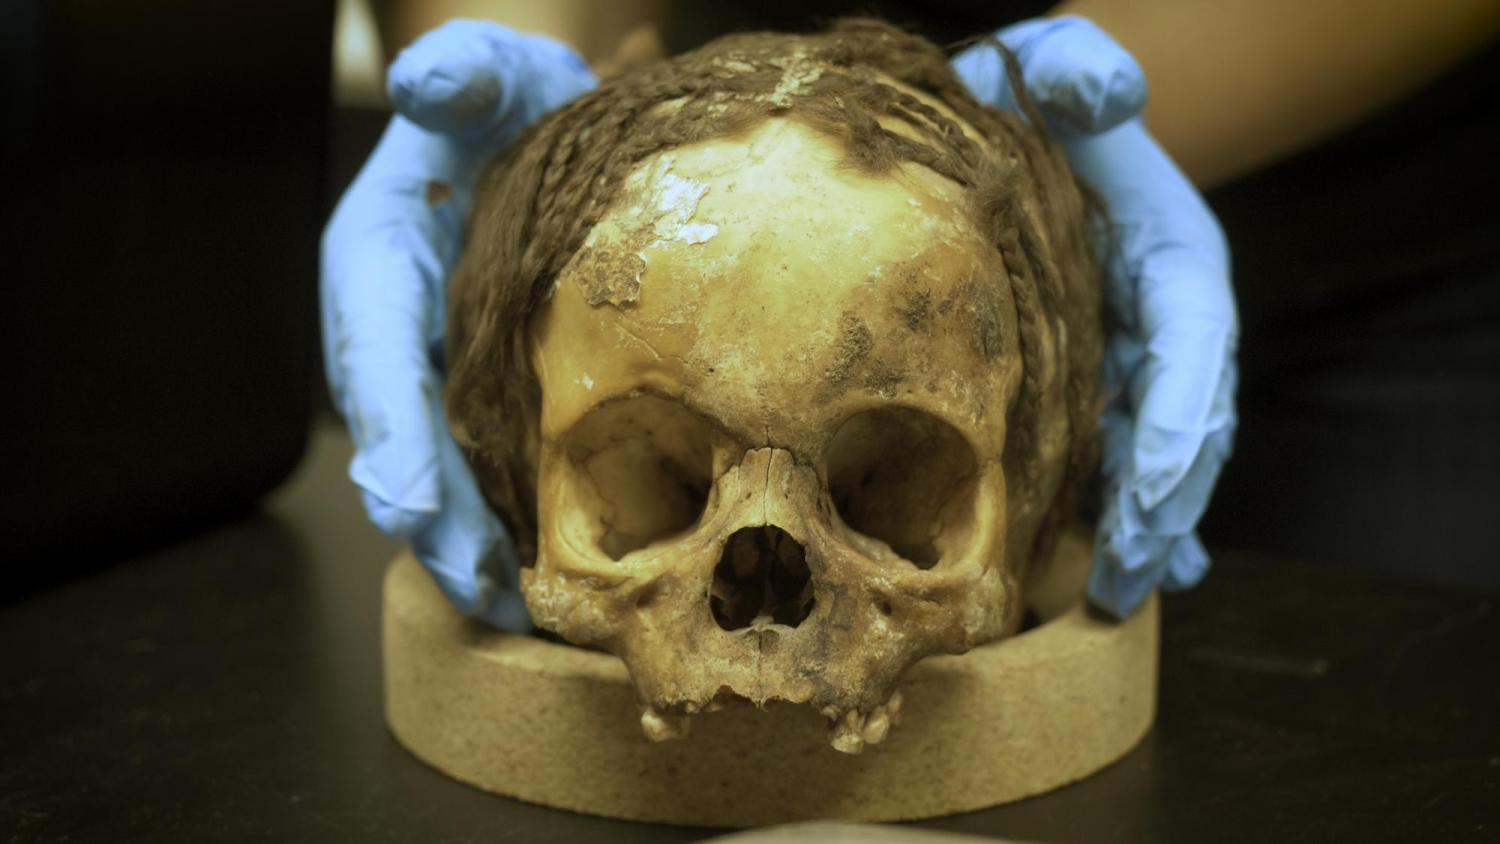 Skull of a 1,300 year-old Nubian mummy with preserved hair braids.